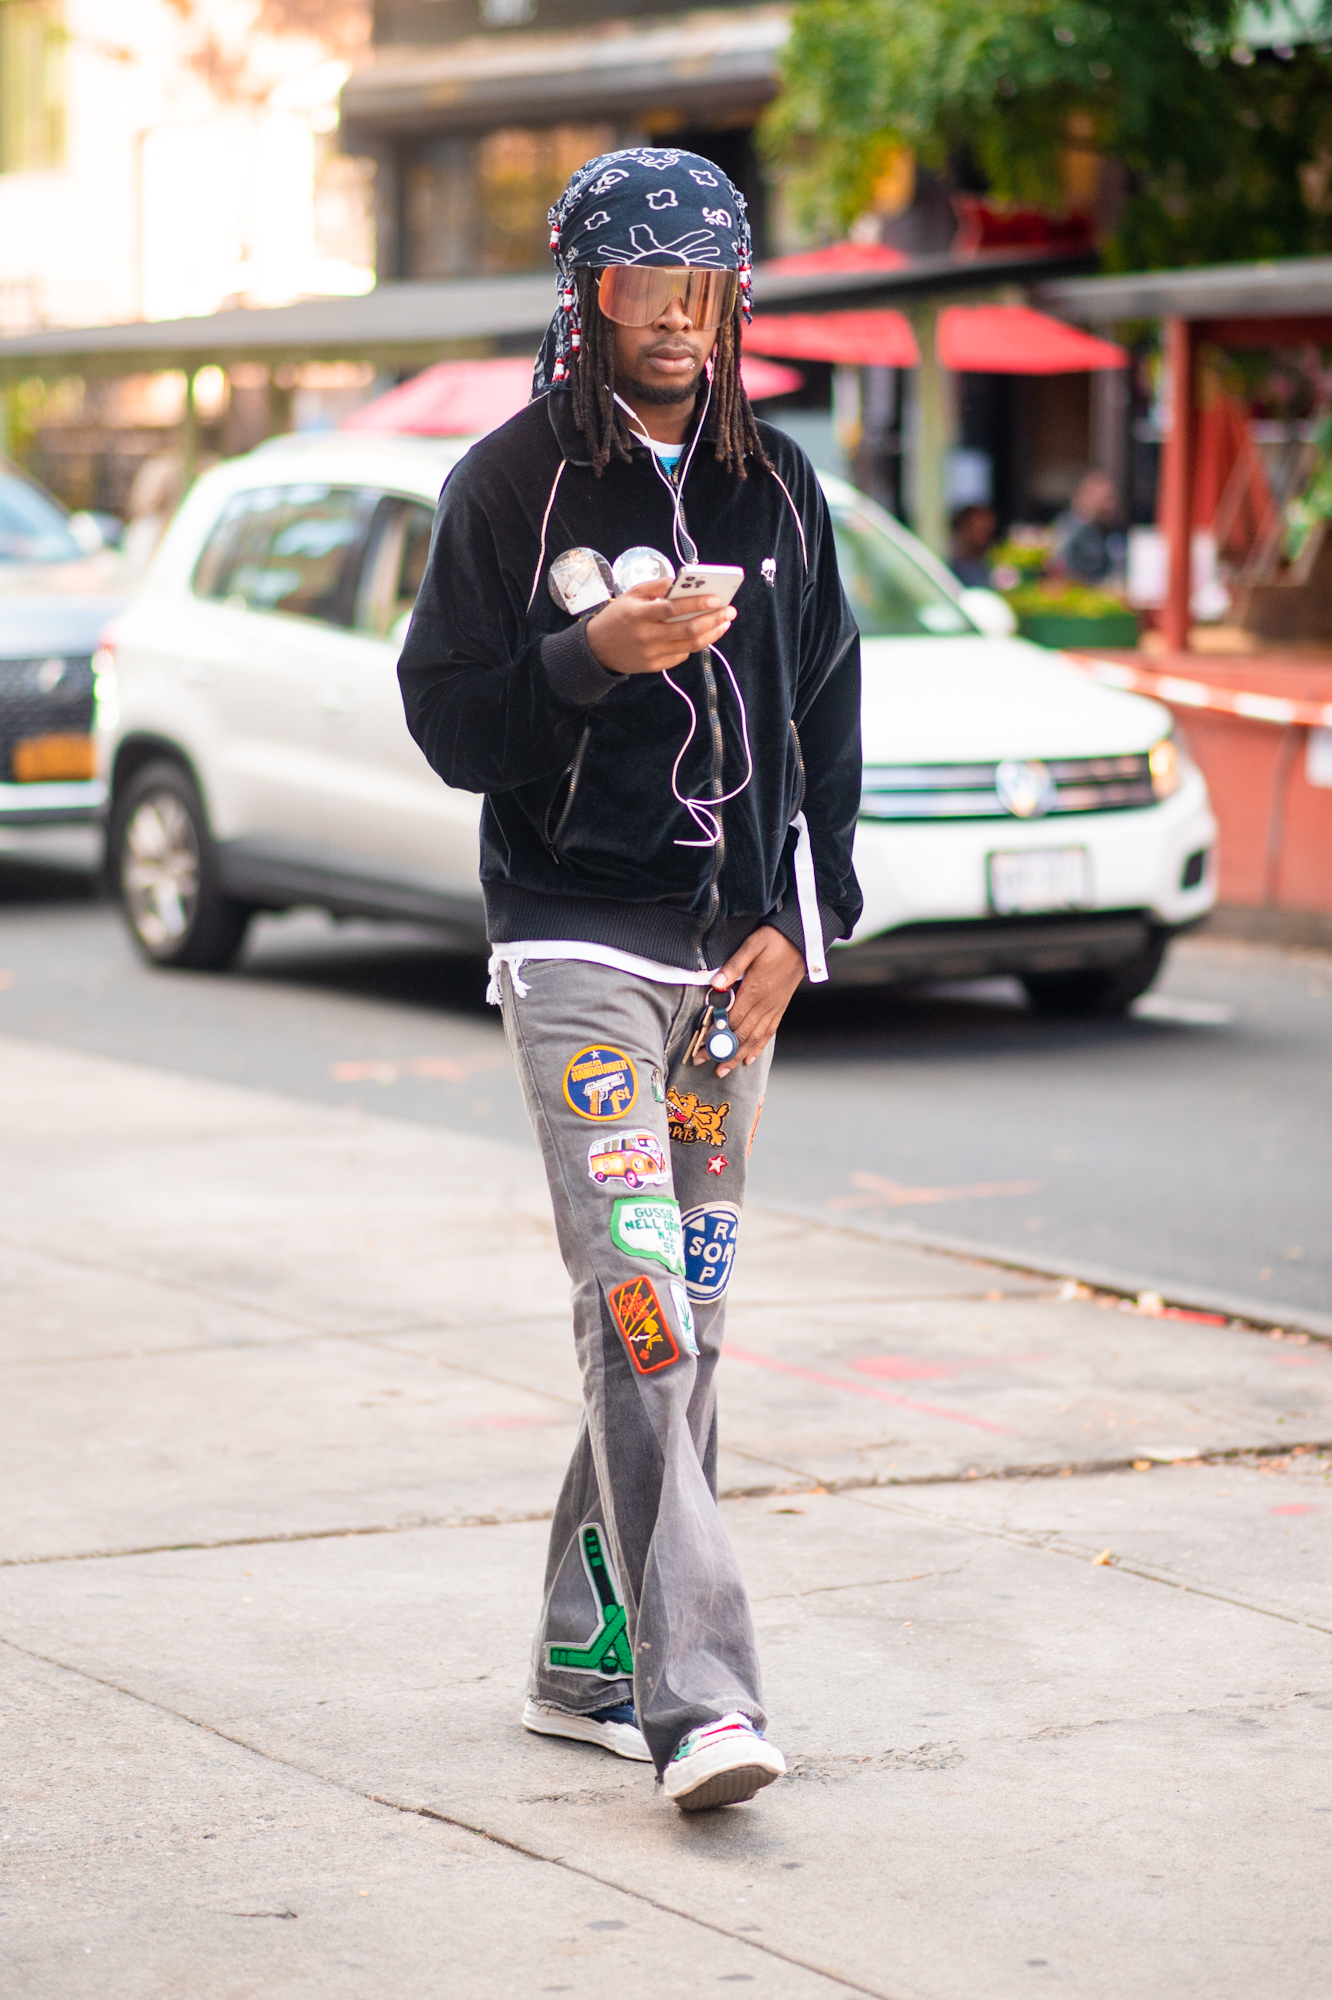 NYC street style fall outfit idea - man wearing jeans with patches - Karya Schanilec NYC fashion photographer